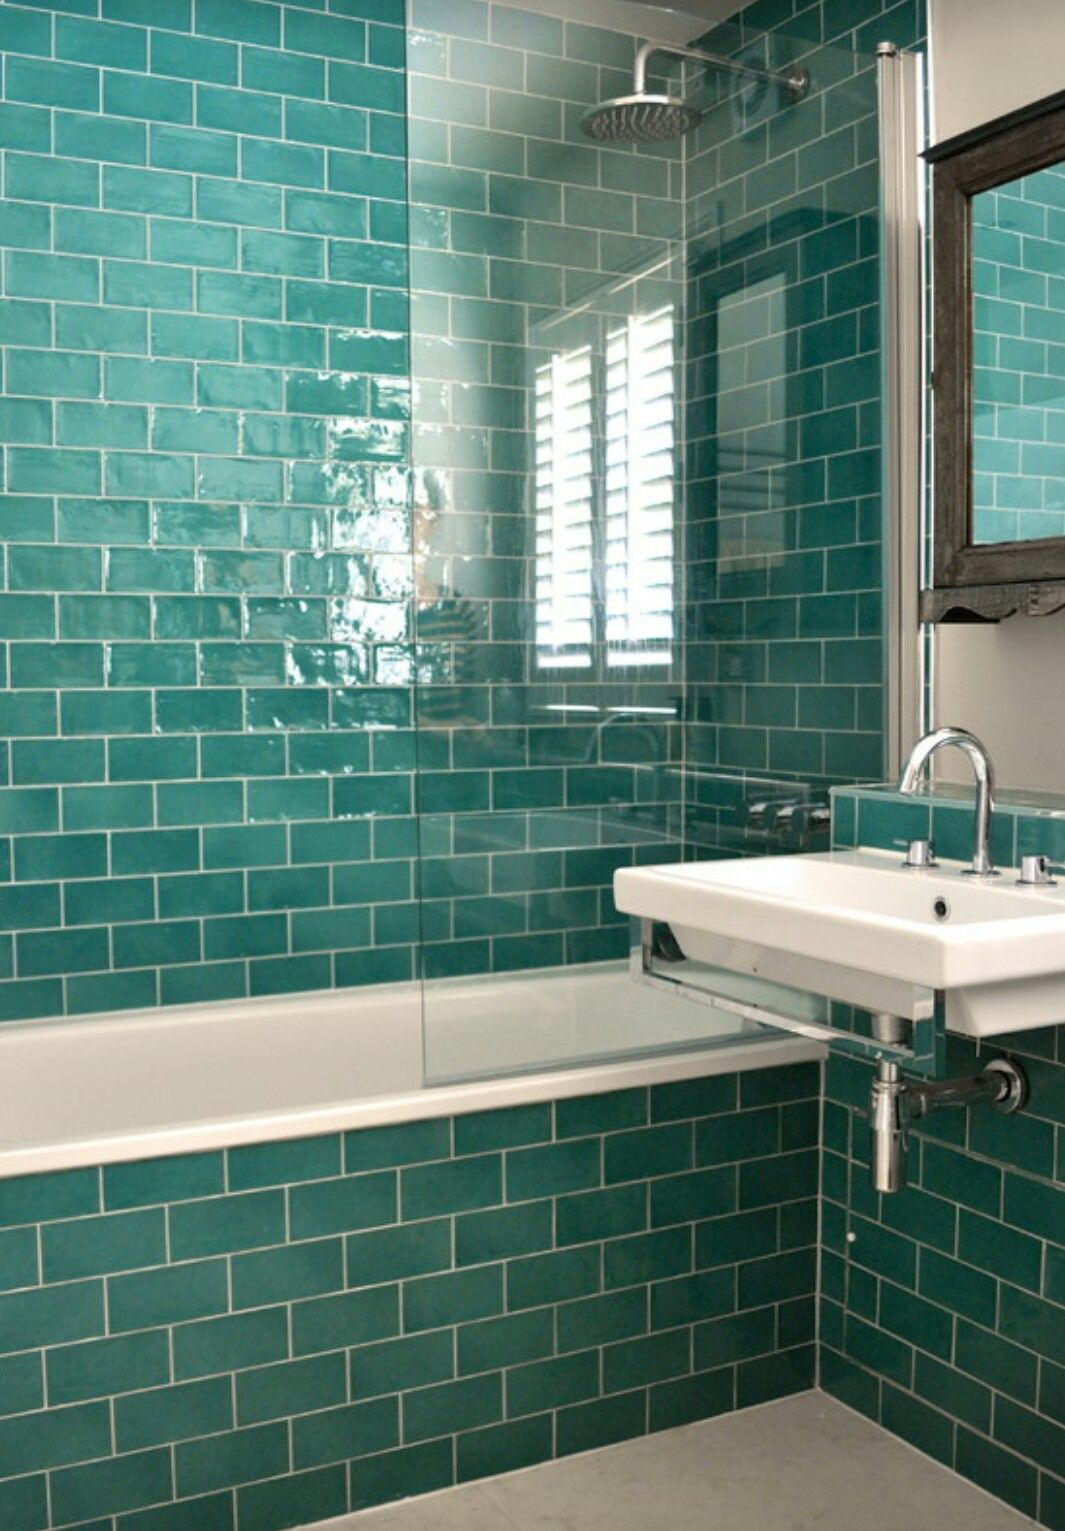 Teal metro tiles | home style // bathrooms in 2018 | Pinterest ...